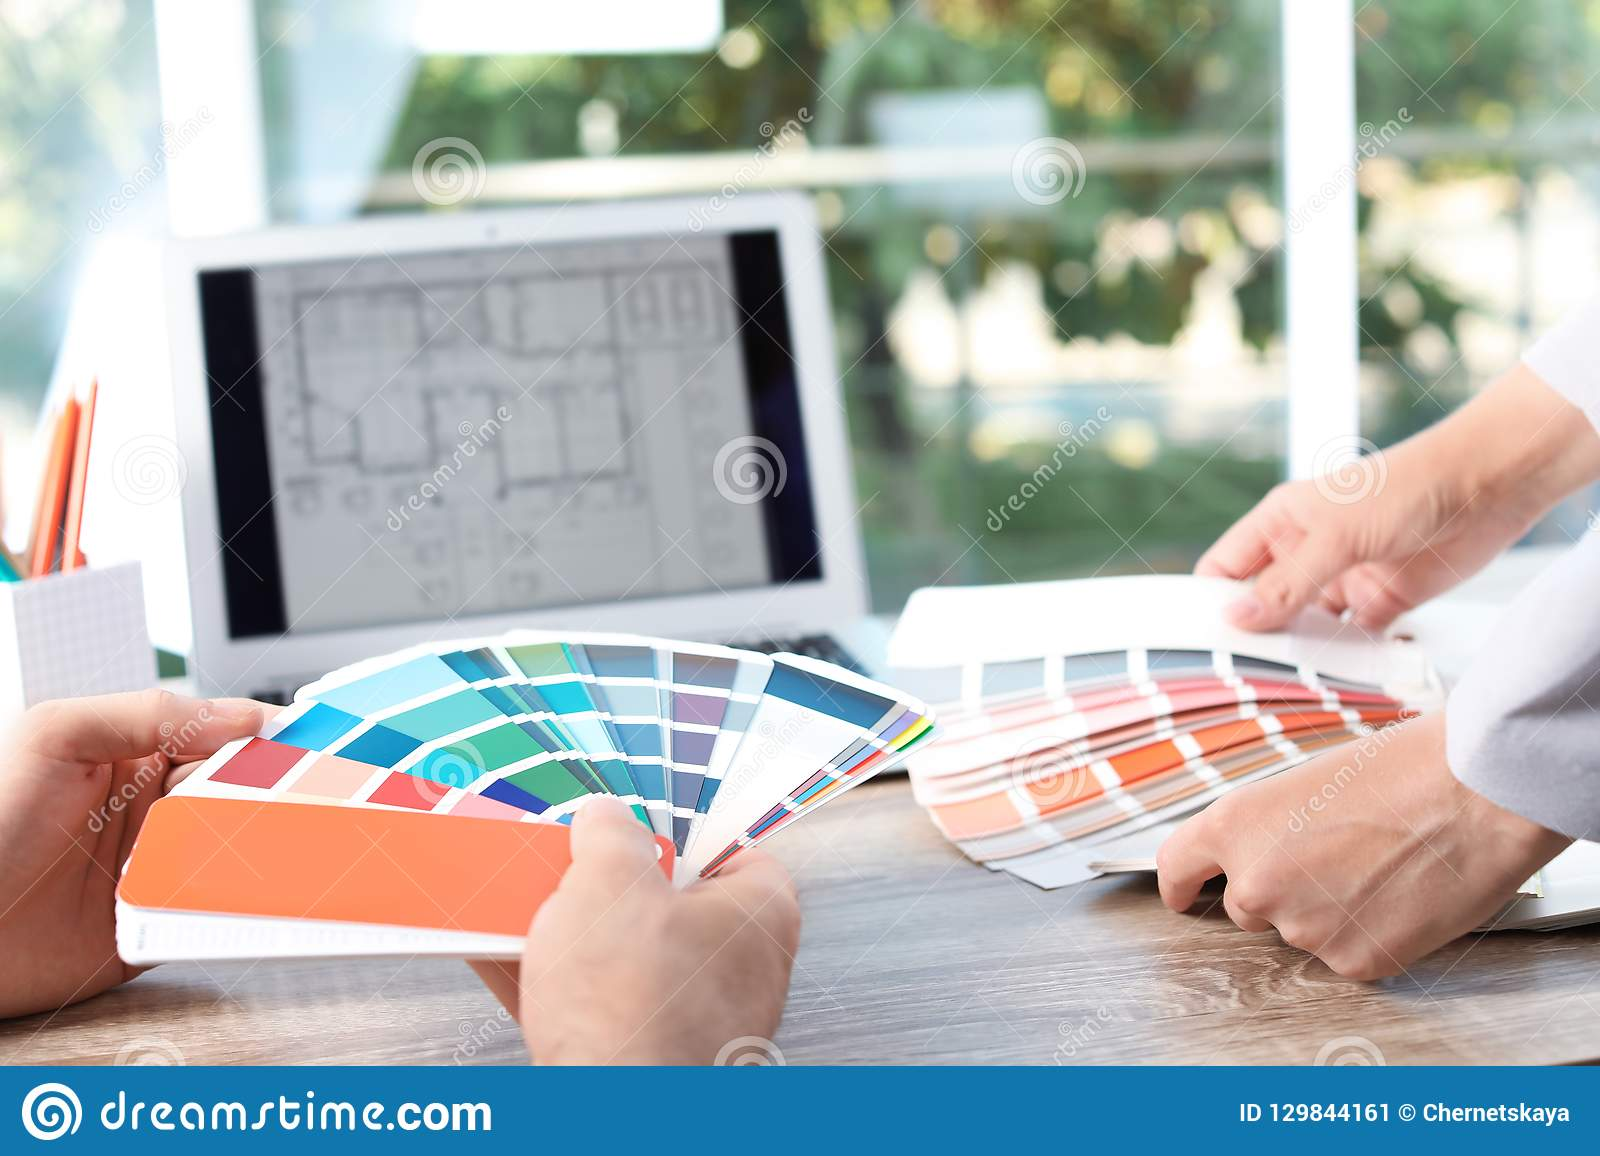 Team of designers working with color palettes